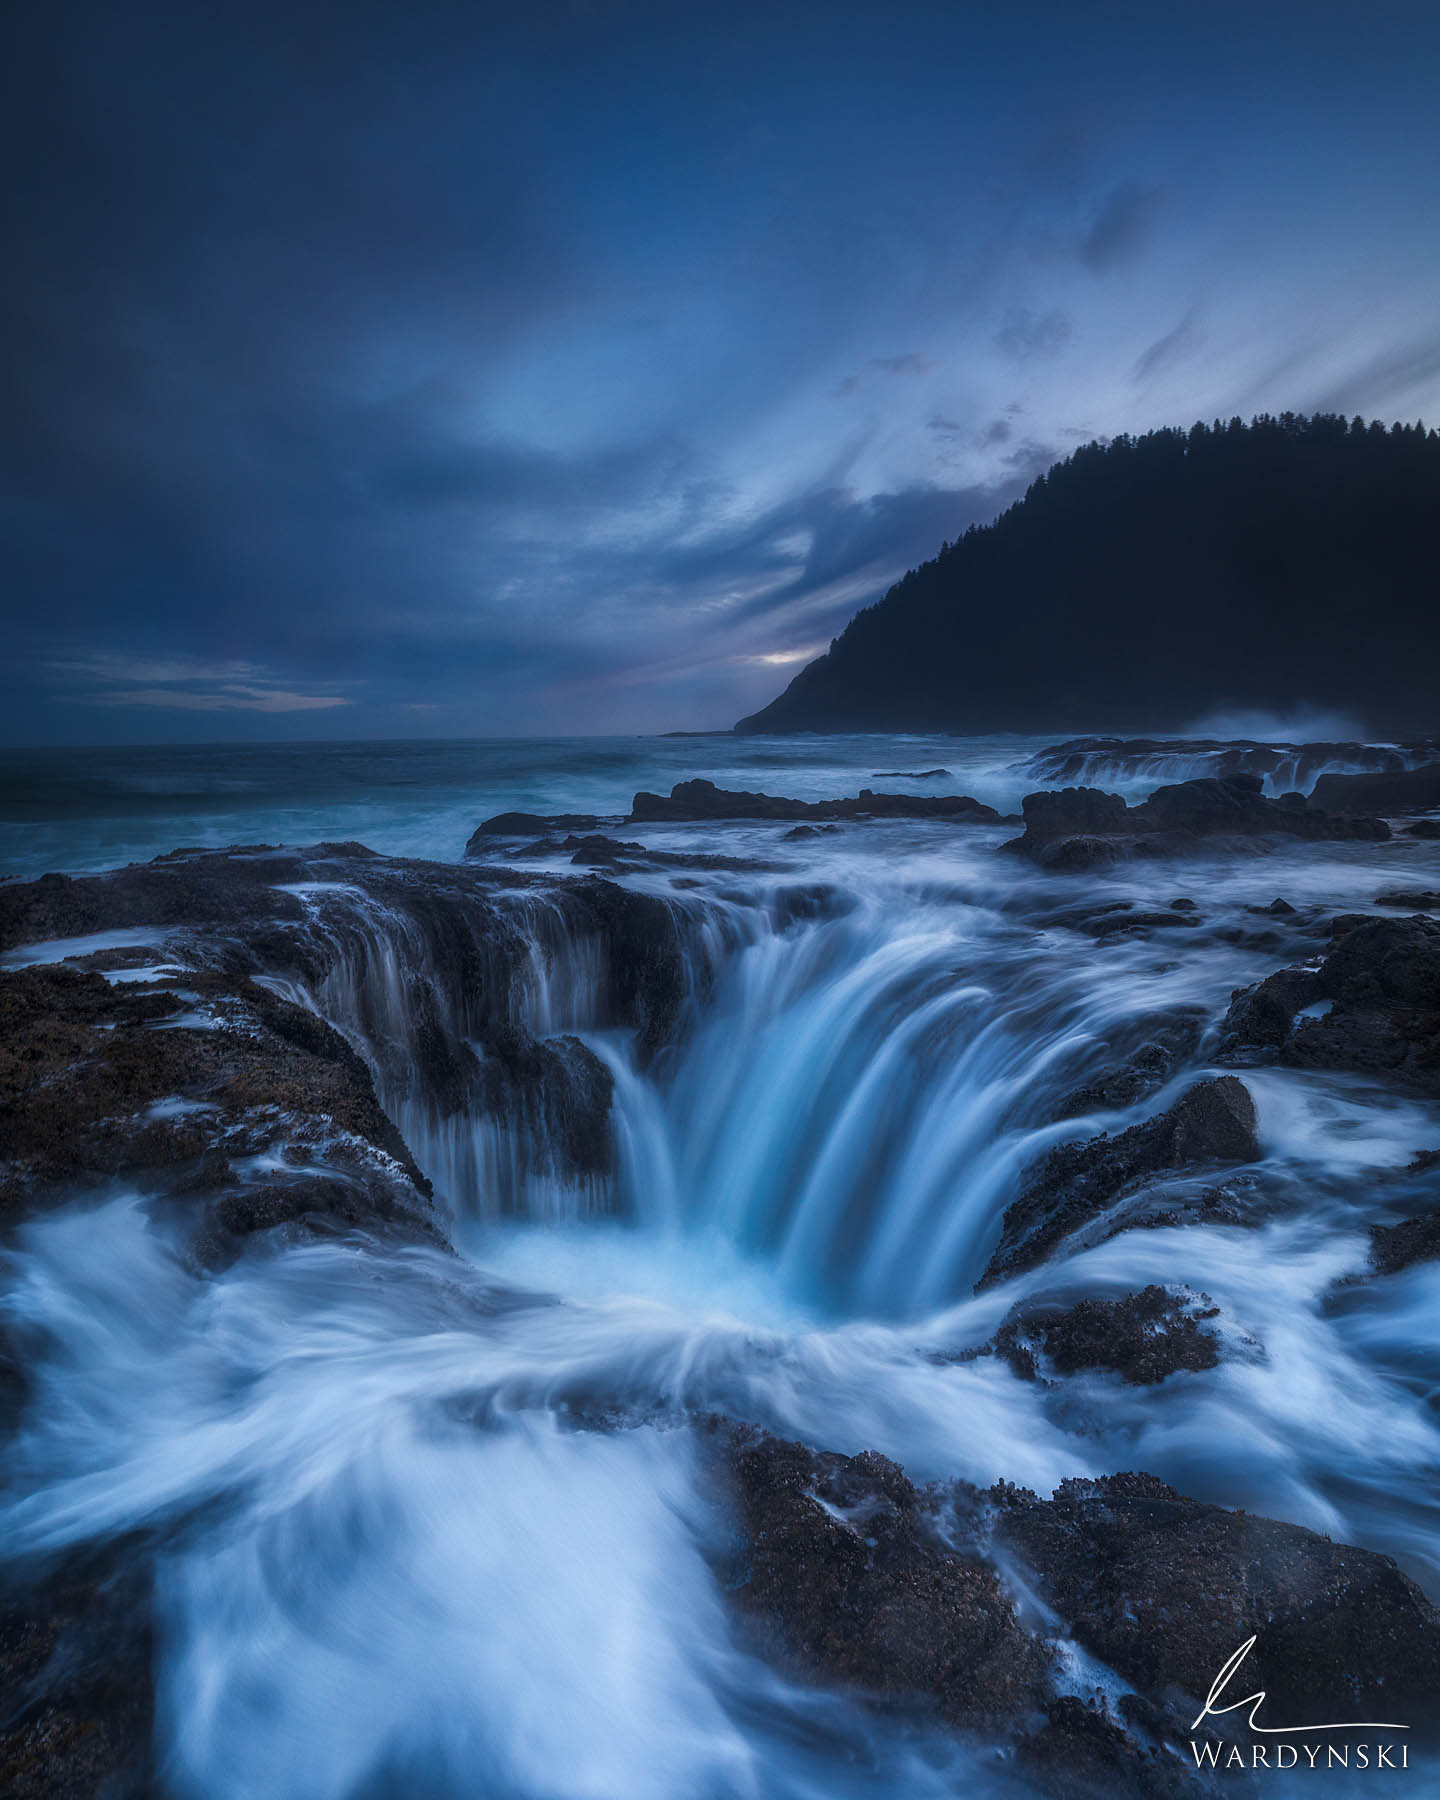 Fine Art Print | Limited Edition of 25  The water in this photograph is billions of years old. It sculpts our planet into the...